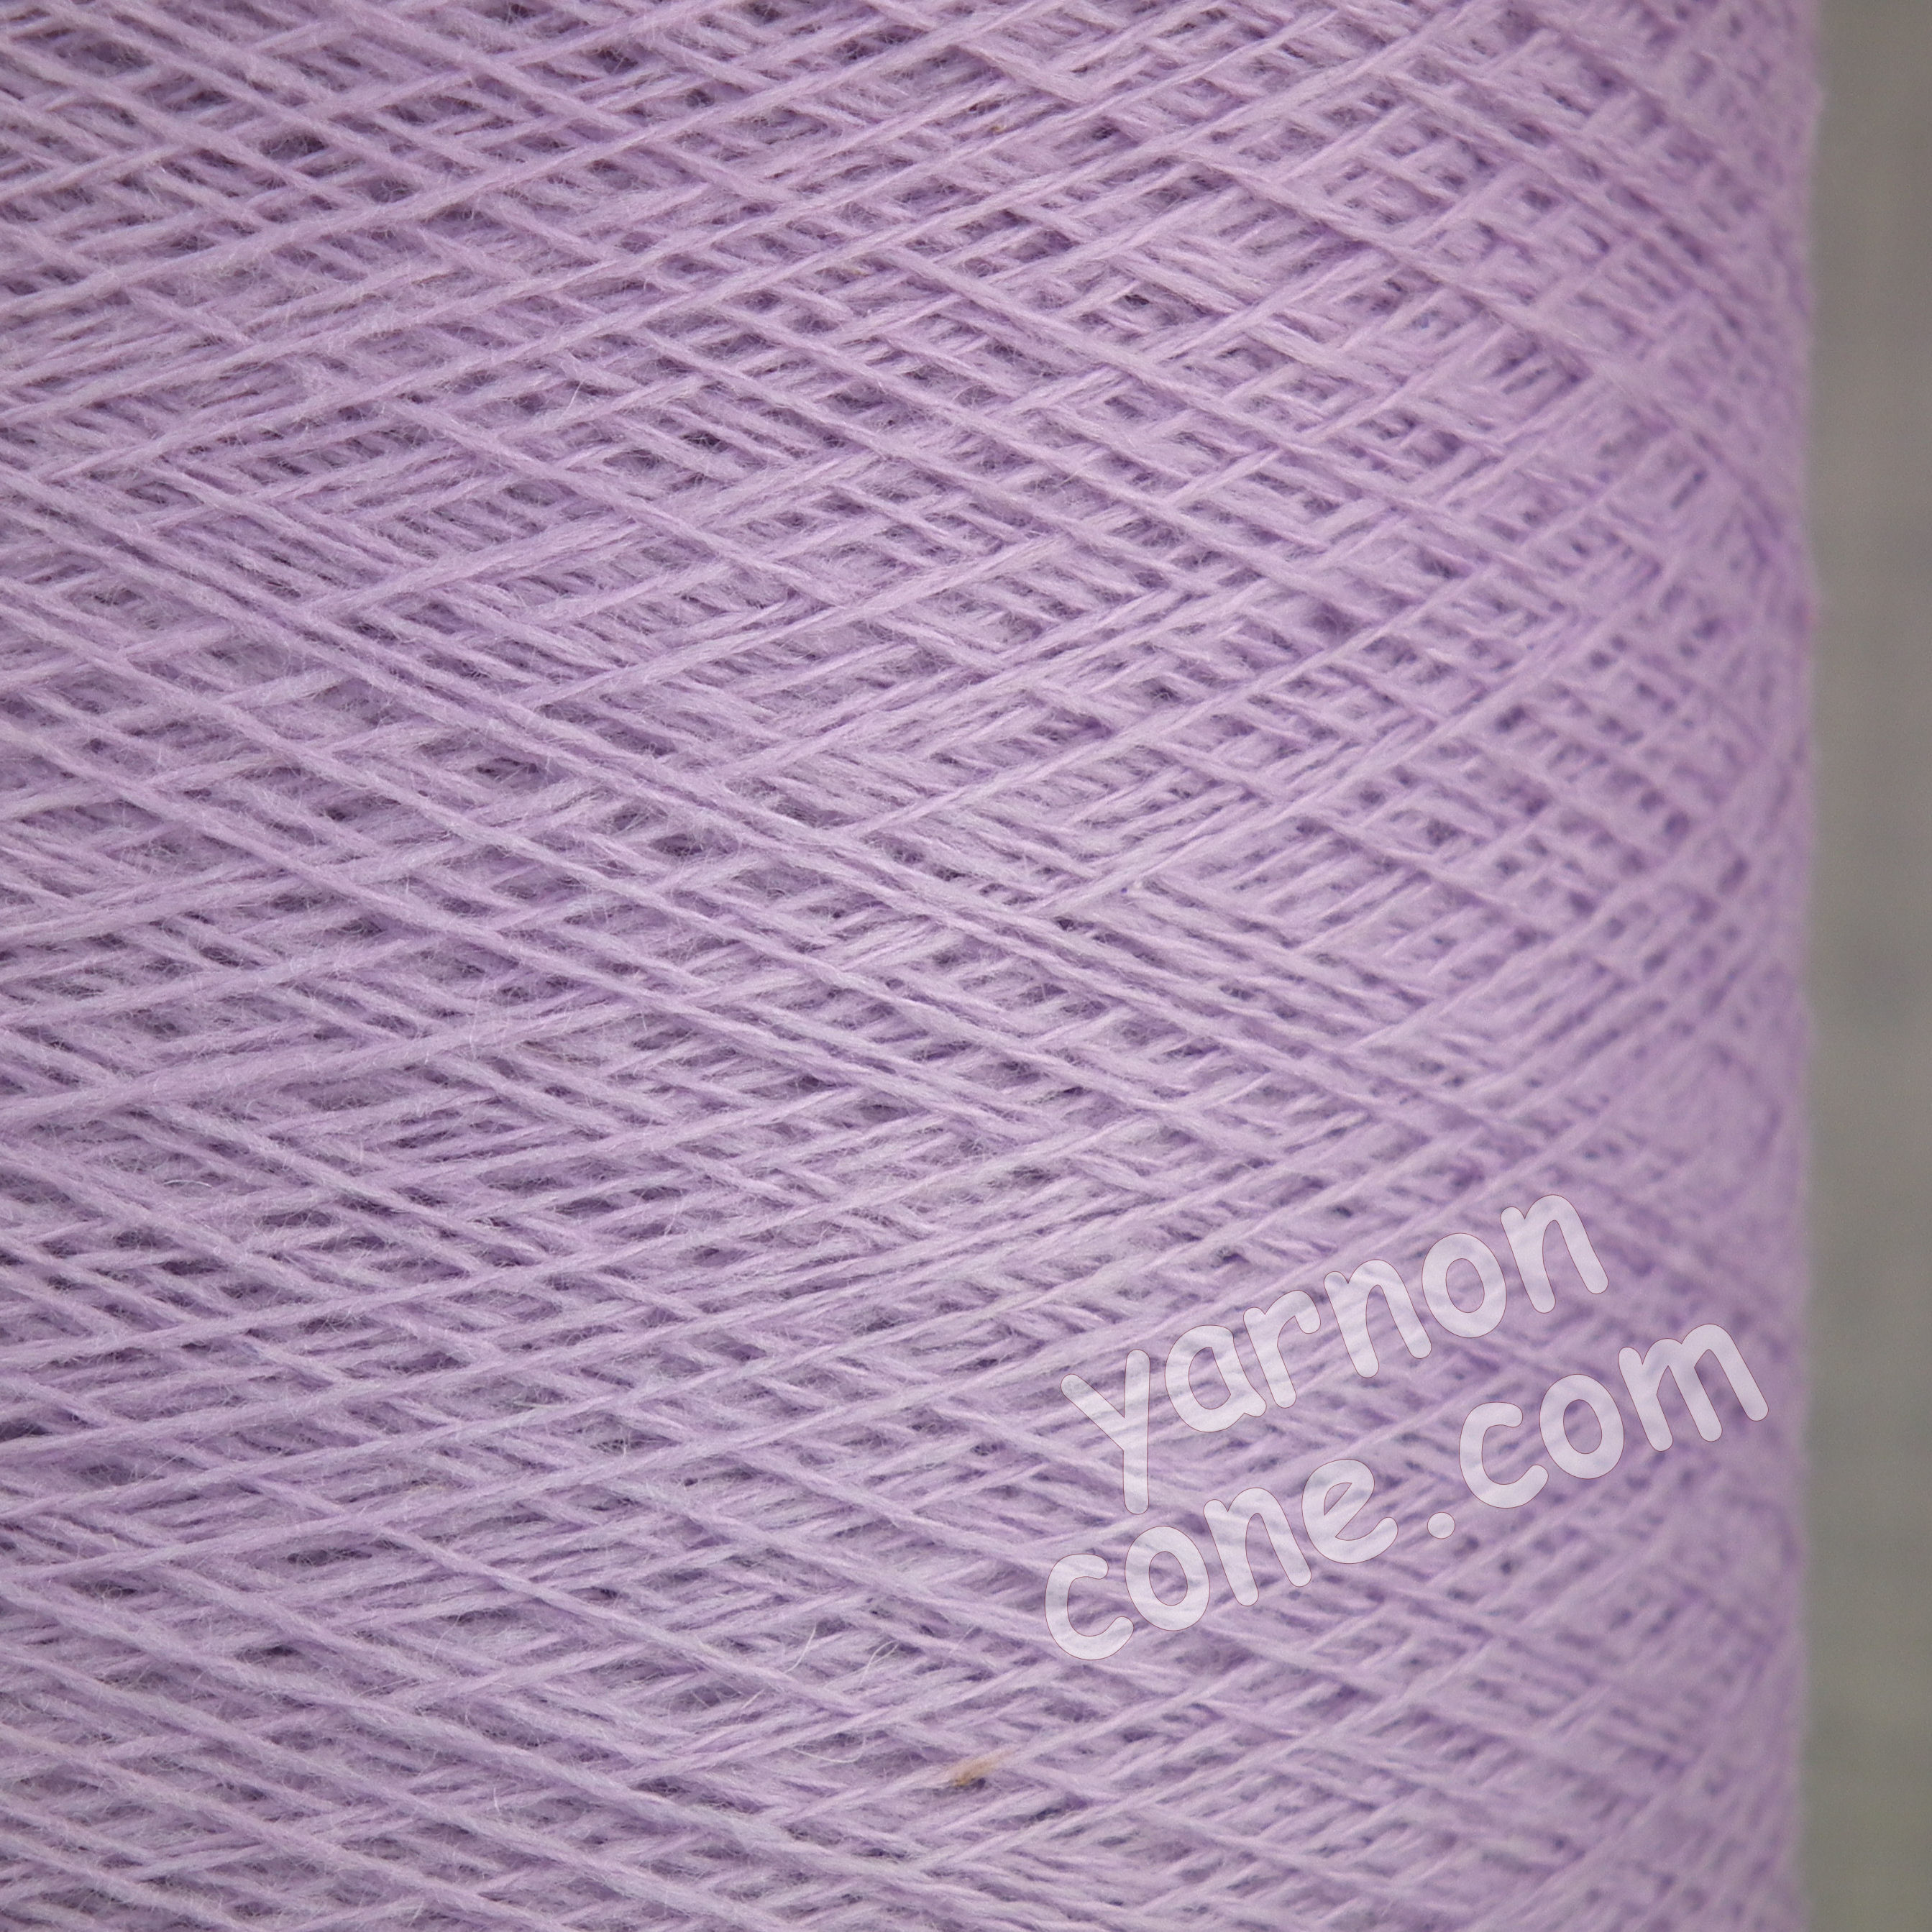 cashmere cotton todd duncan odyssey cone uk knitting soft lavender lilac purple